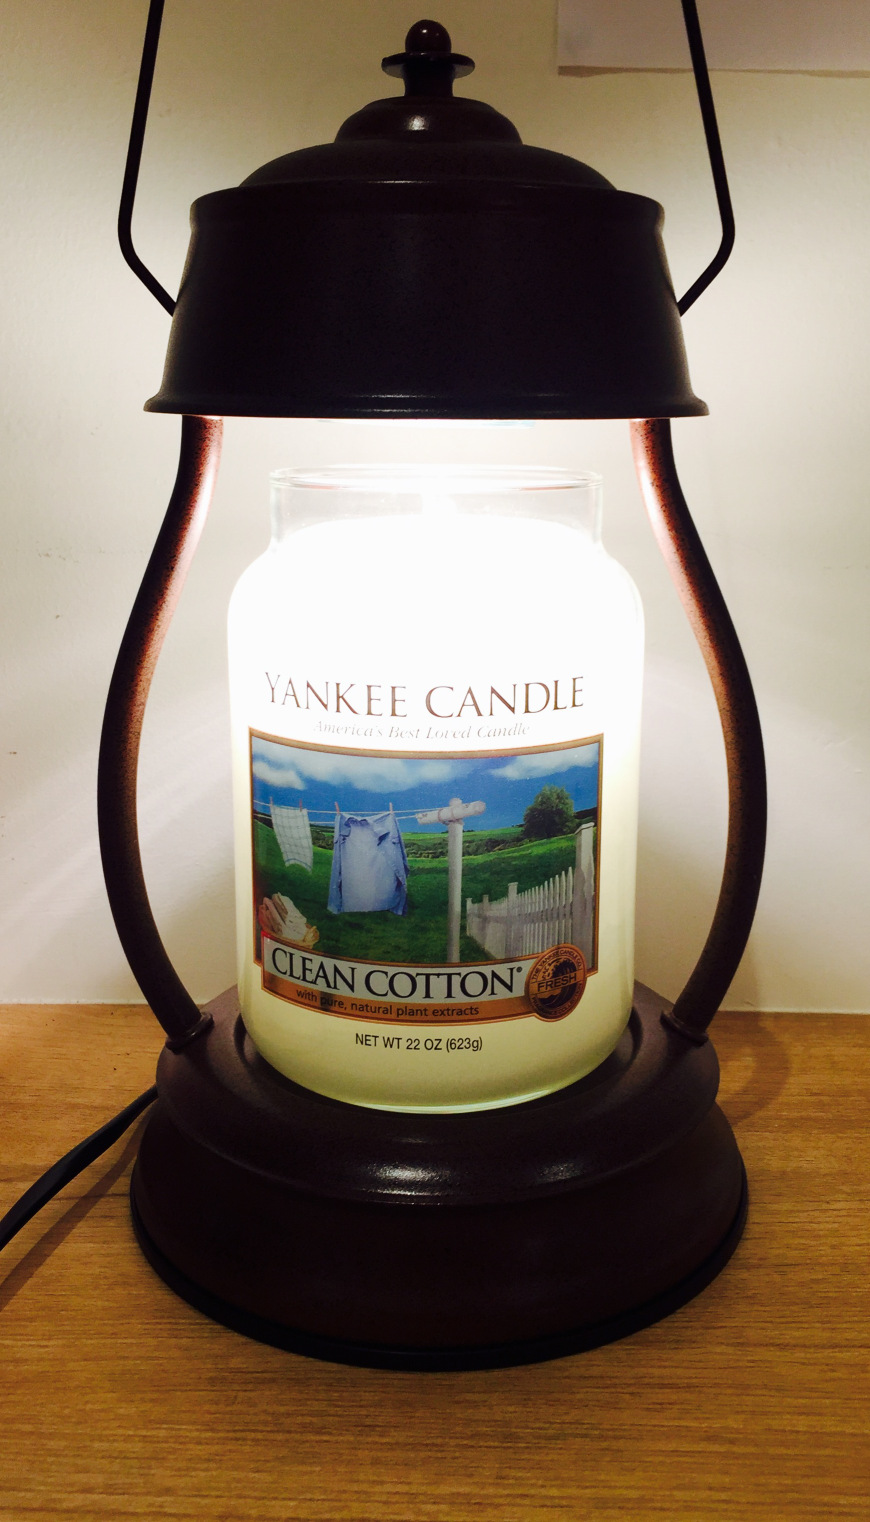 Yankee Candle Warmer Photo Album Happy Easter Day